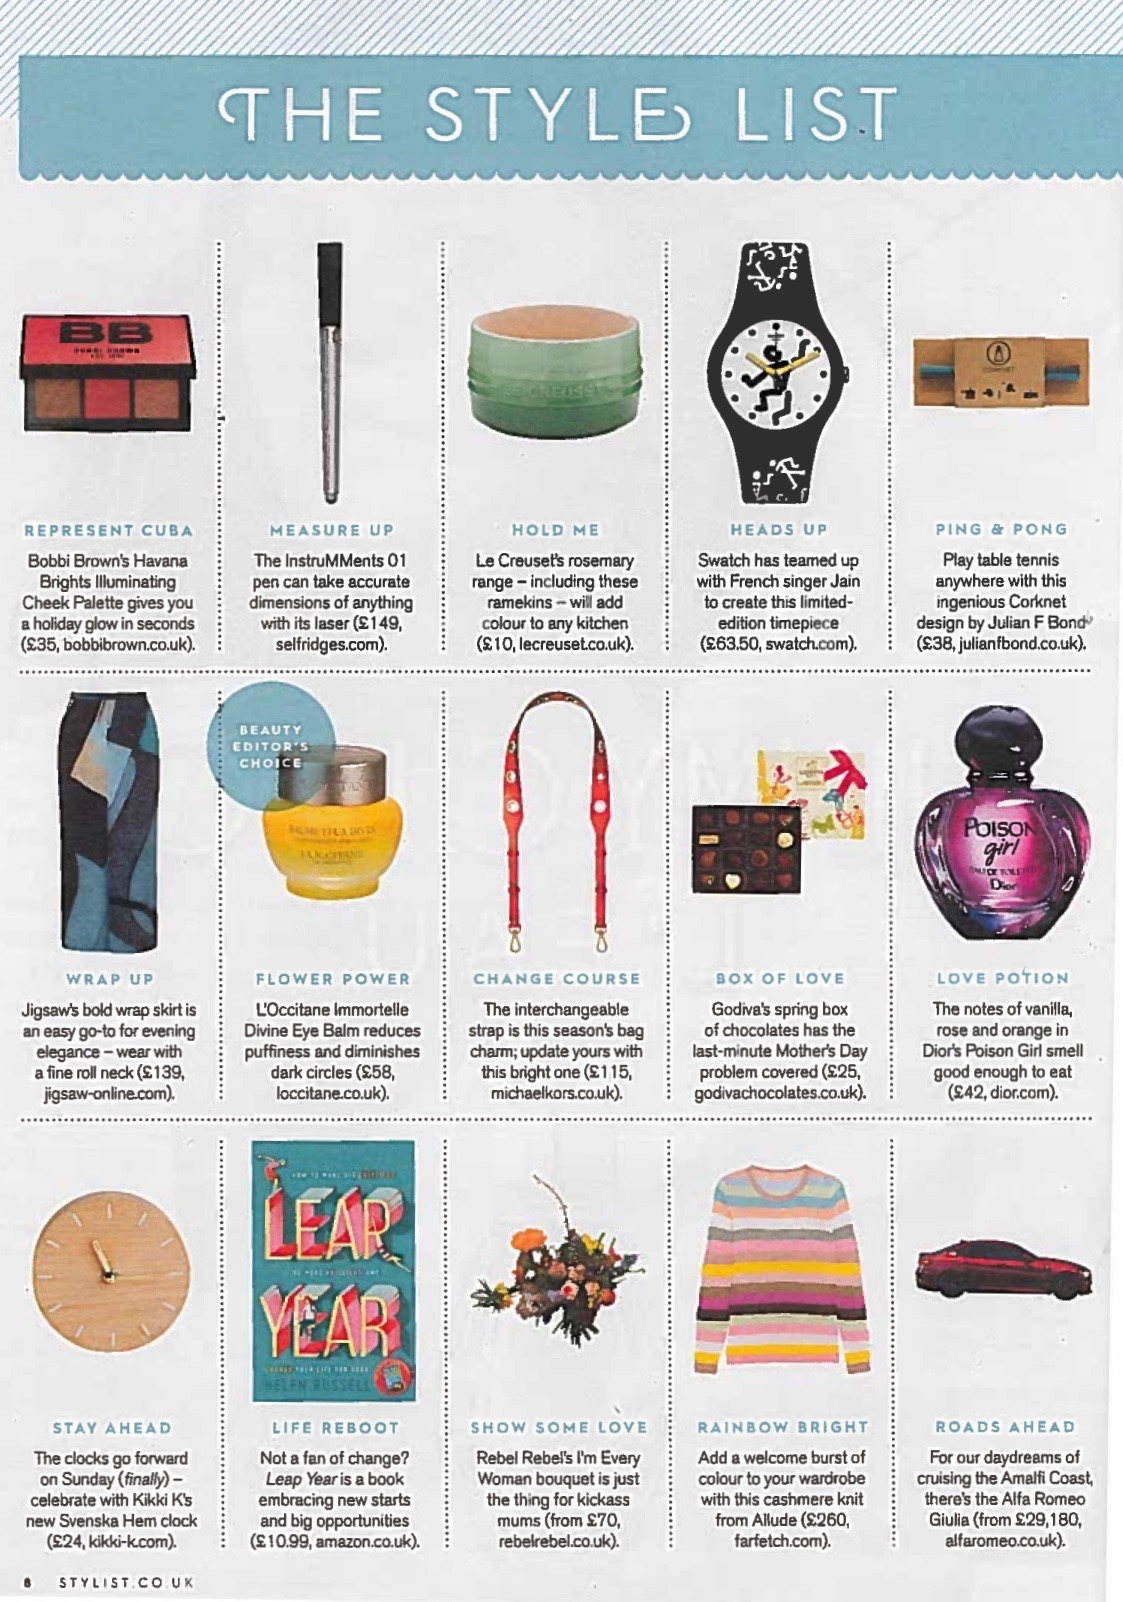 Leap Year makes The Style List in Stylist magazine 23rd March 2017